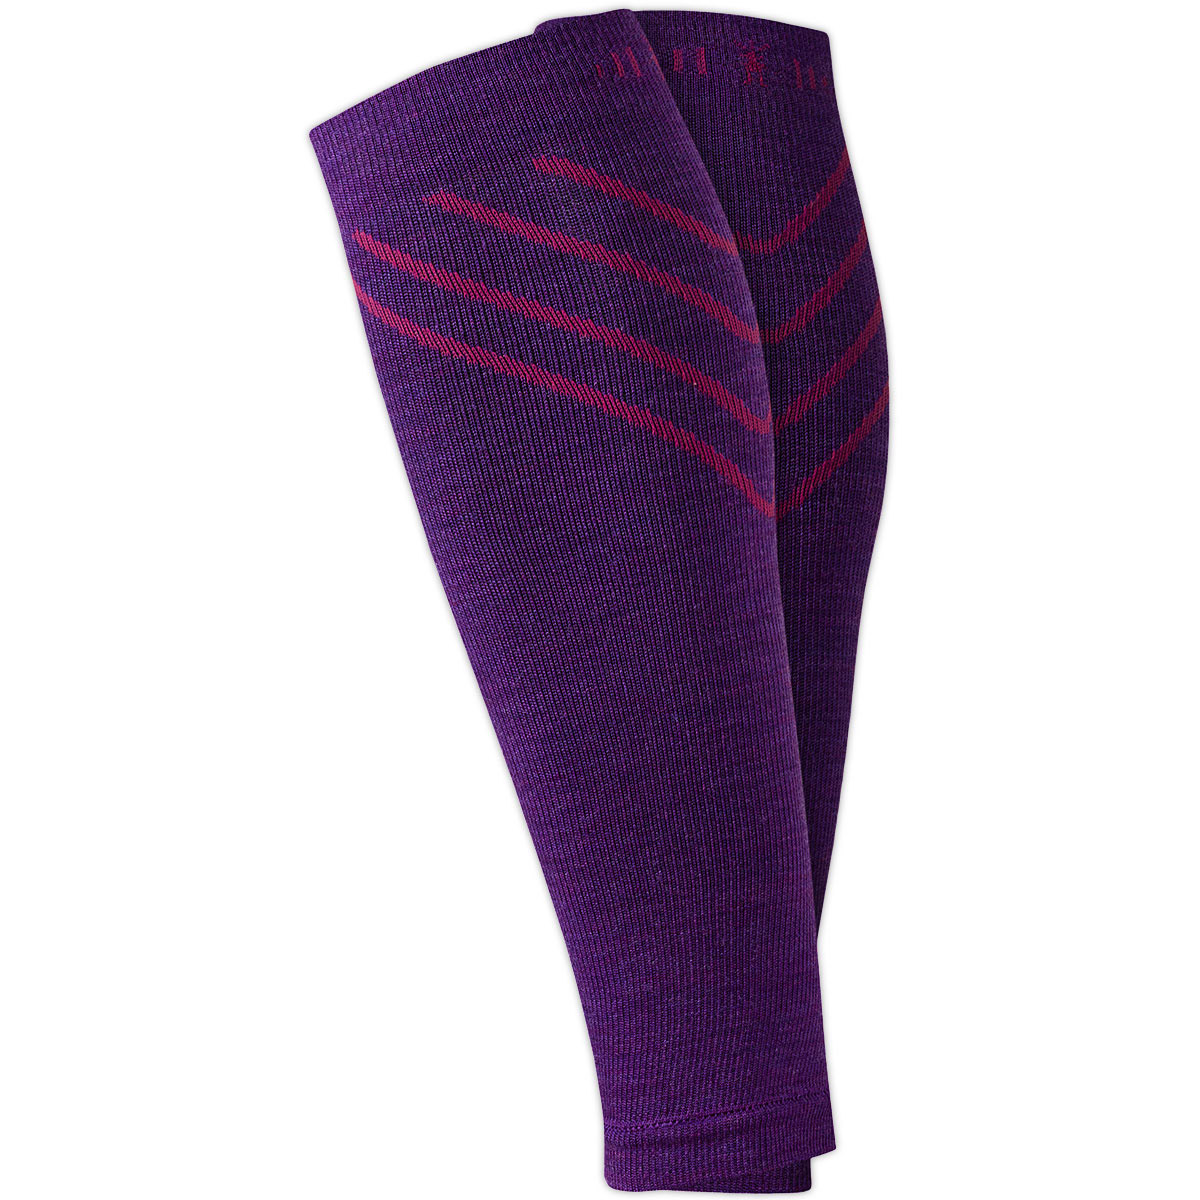 Smartwool Phd Compression Calf Sleeves - Purple, S